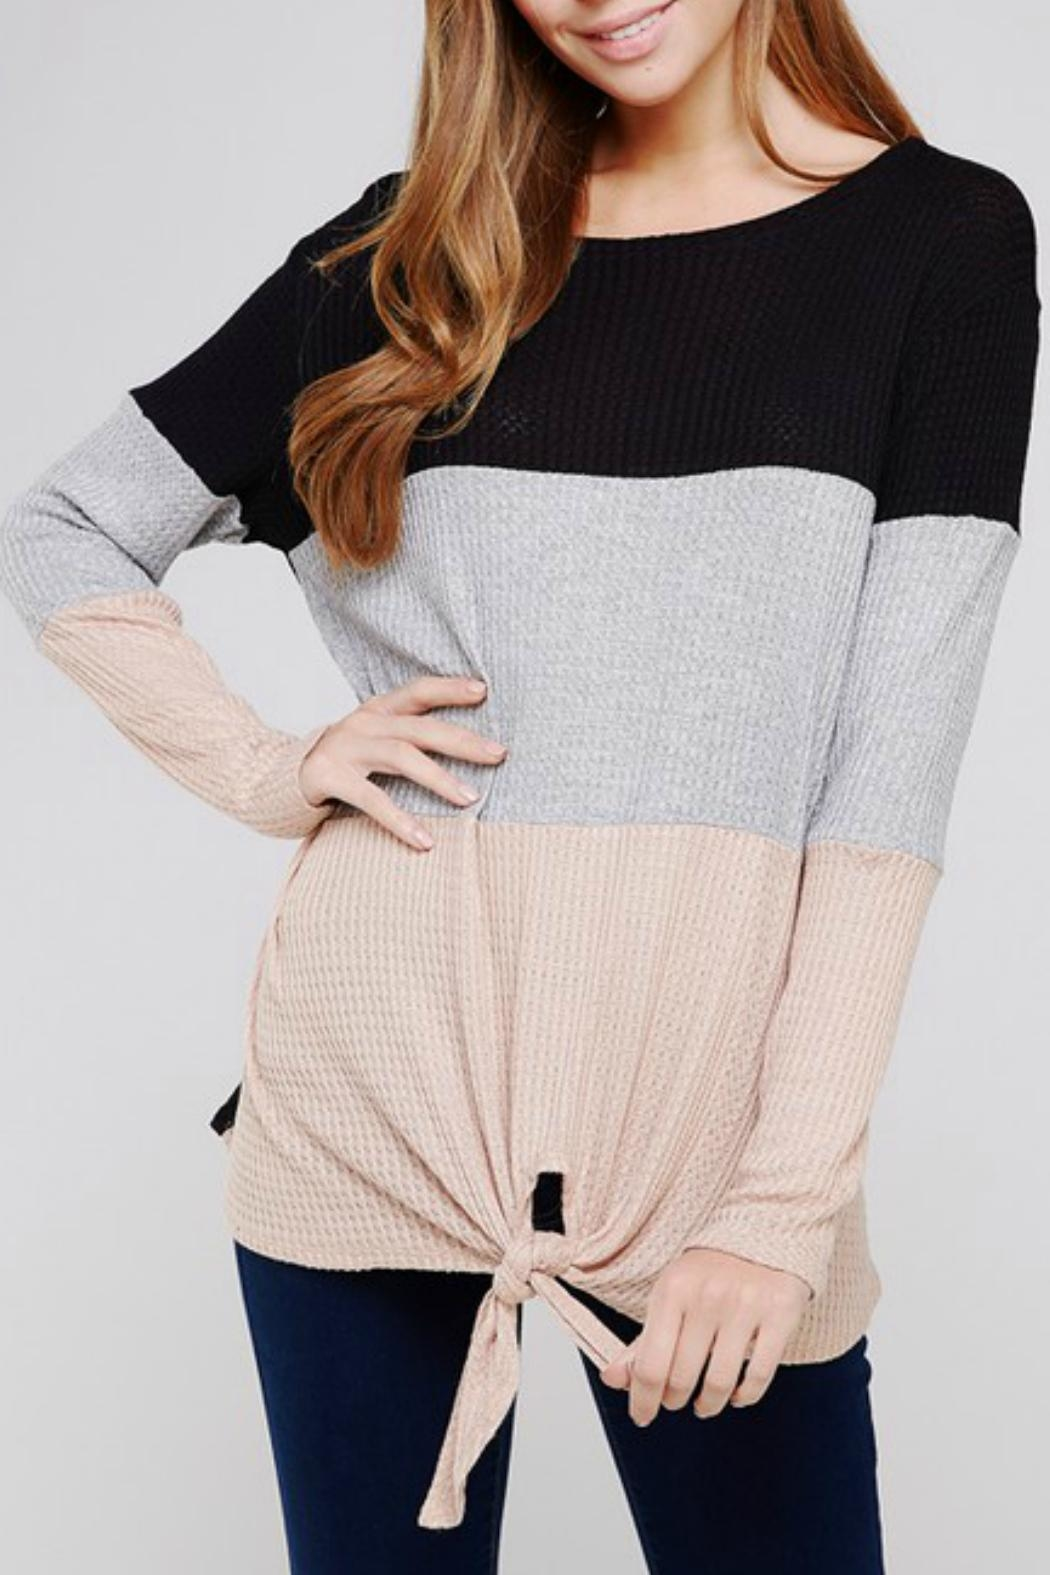 Blooms in The City Waffle-Knit Color-Block Top - Main Image